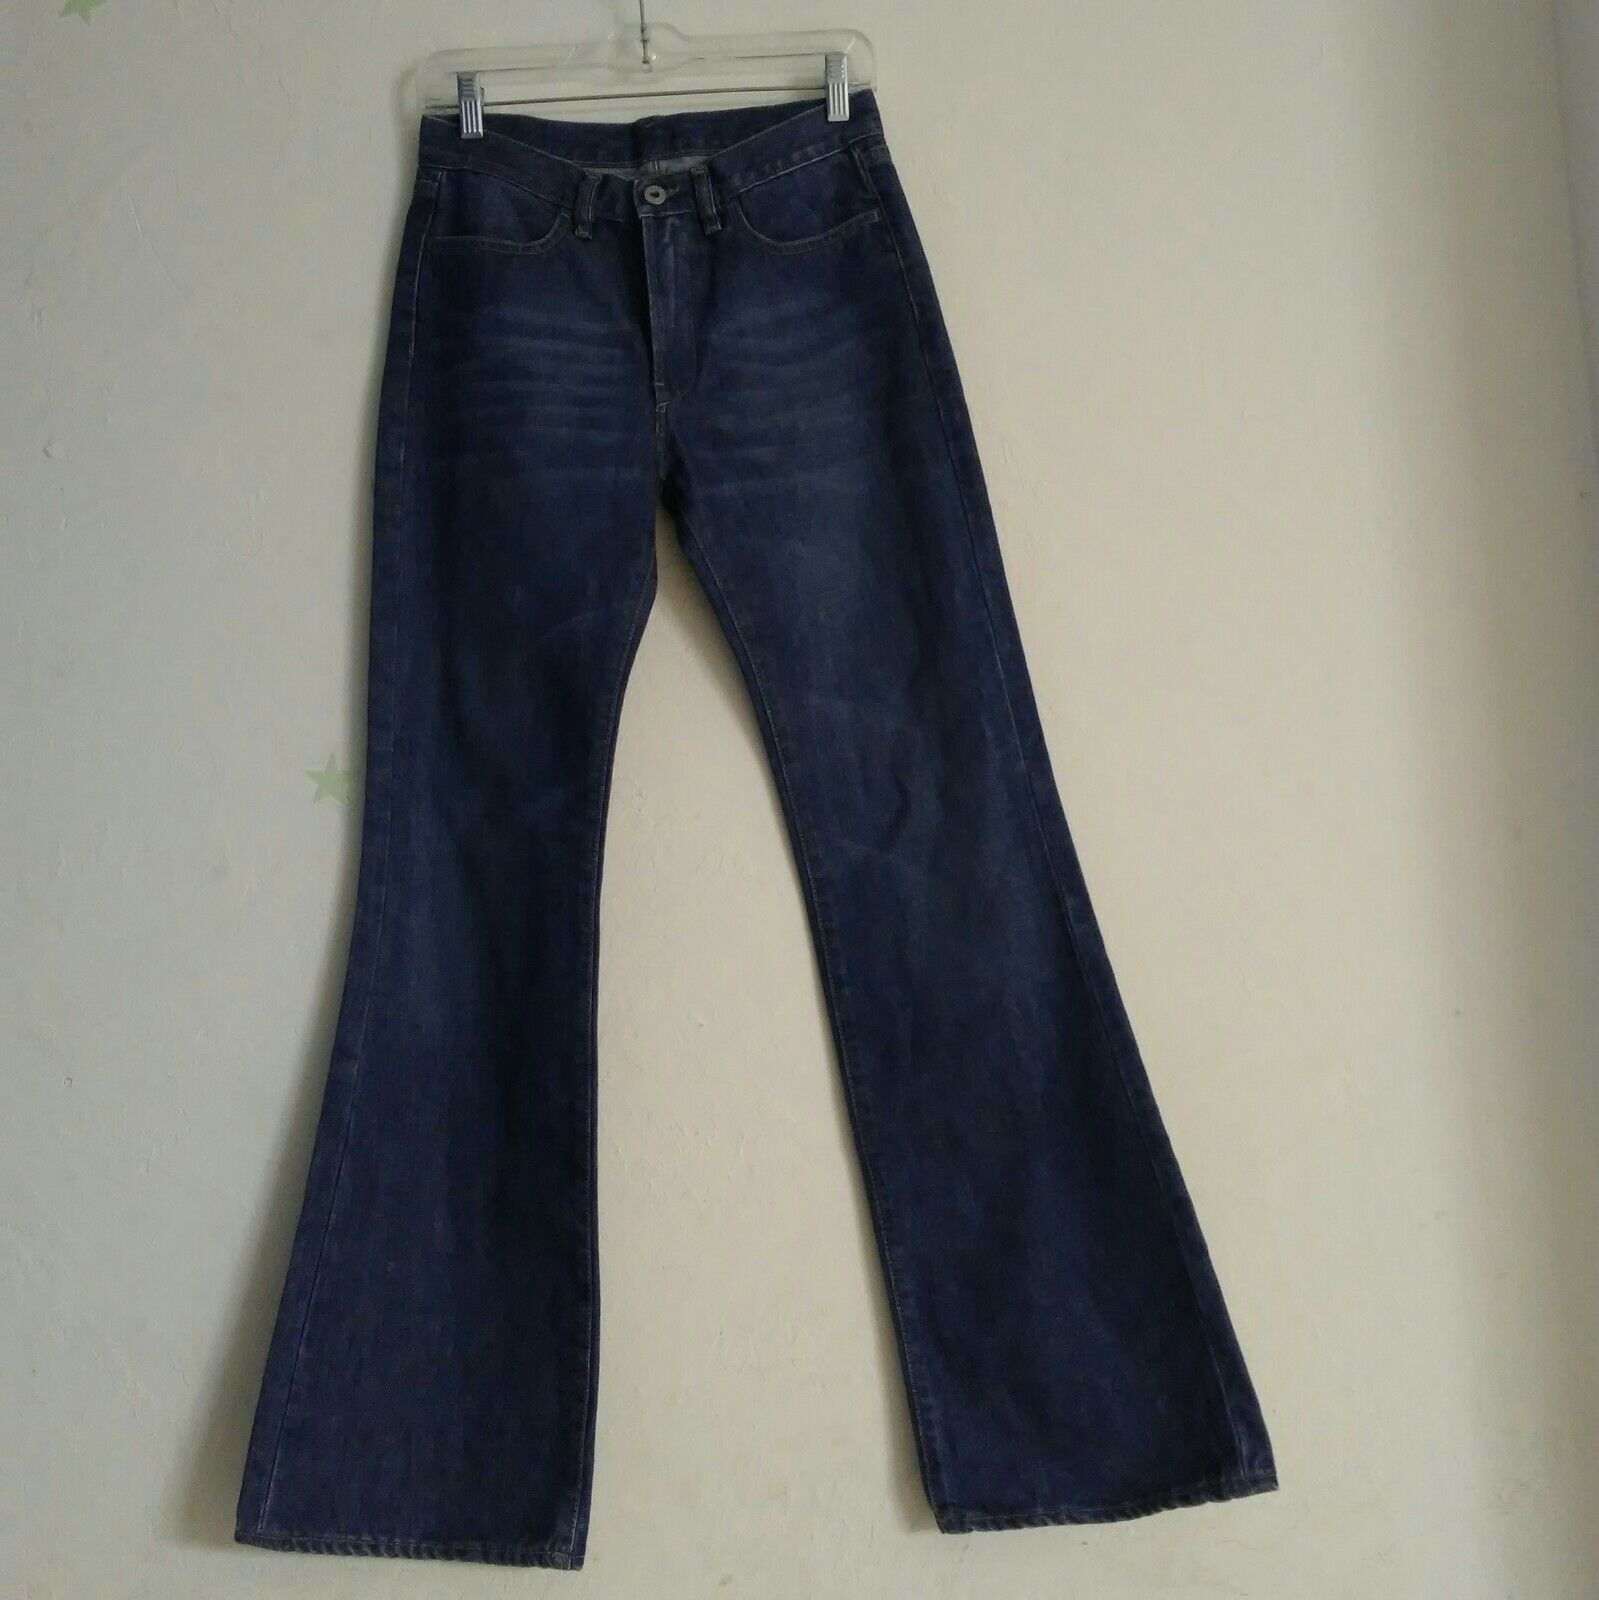 Diesel Extra flare leg jeans size 27